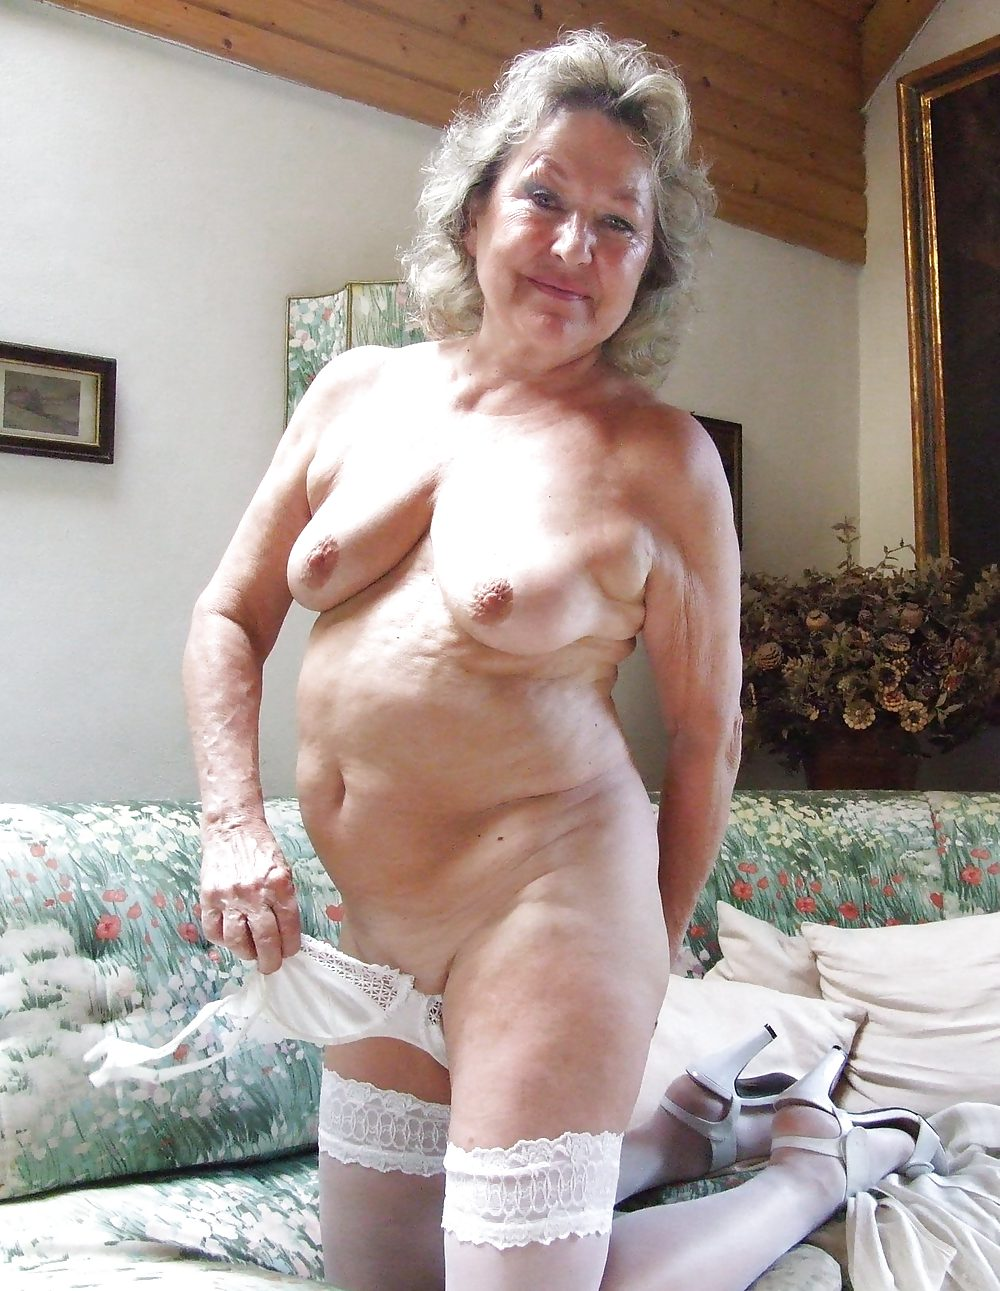 grannies-posing-naked-how-to-download-from-pornhub